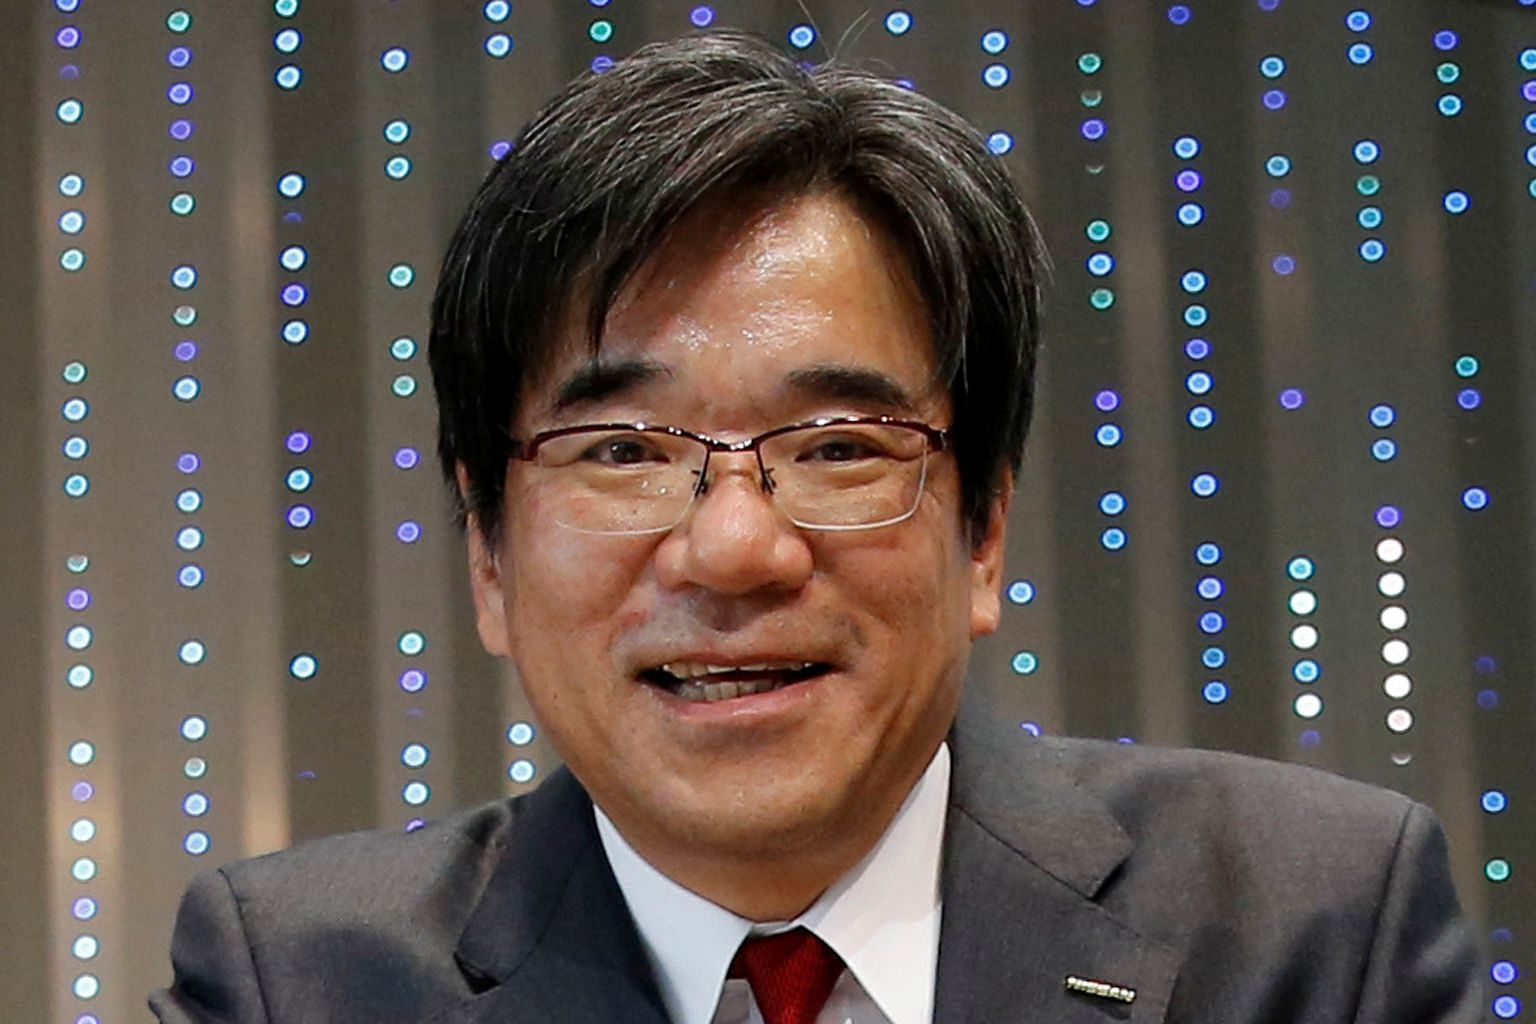 Nissan has named executive officer Hideyuki Sakamoto as a candidate for the board of directors.